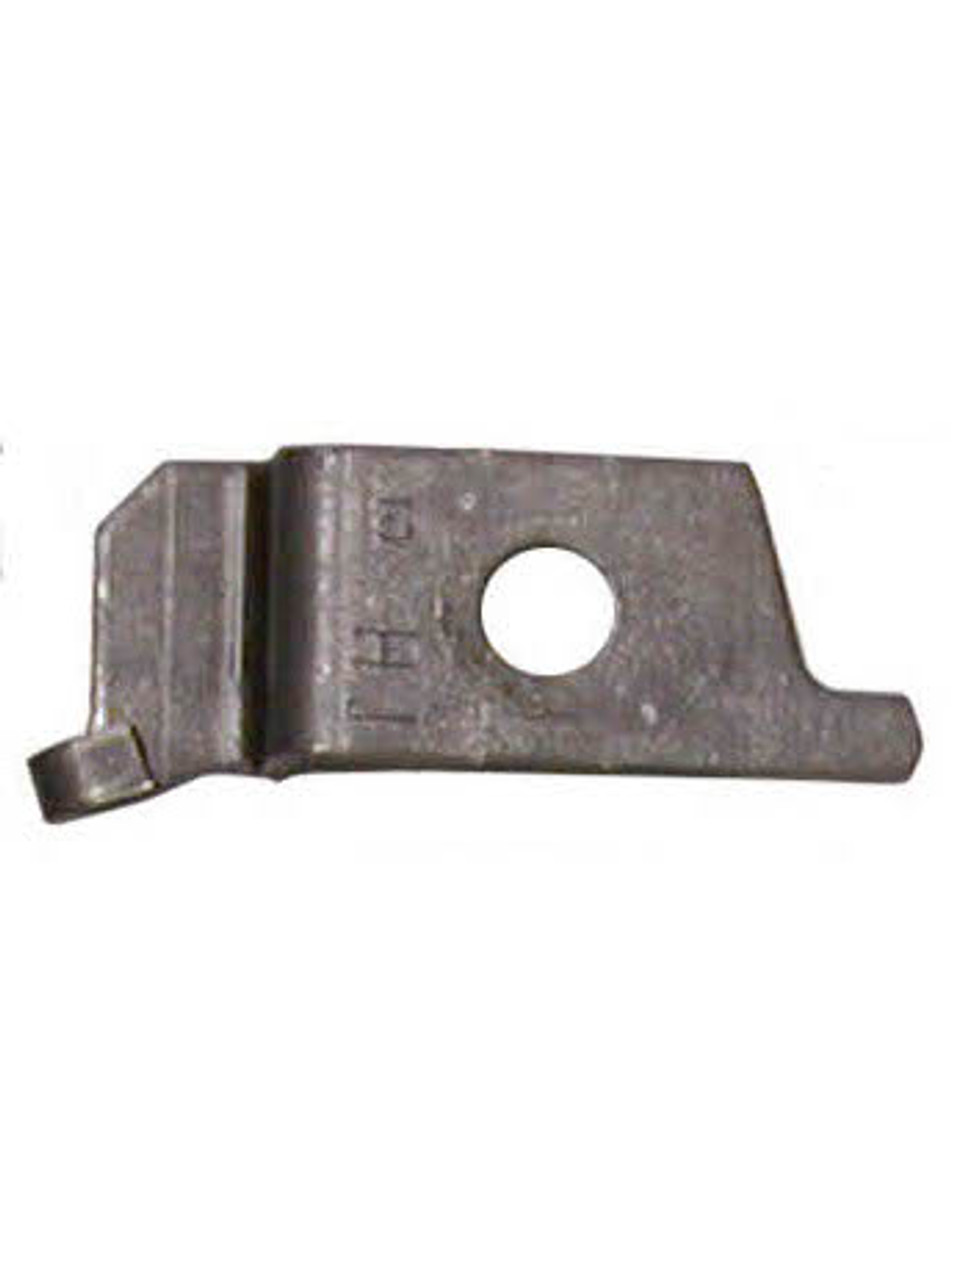 71-455-2 --- Lever Arm Retainer for Dexter Electric Brakes - Right Hand